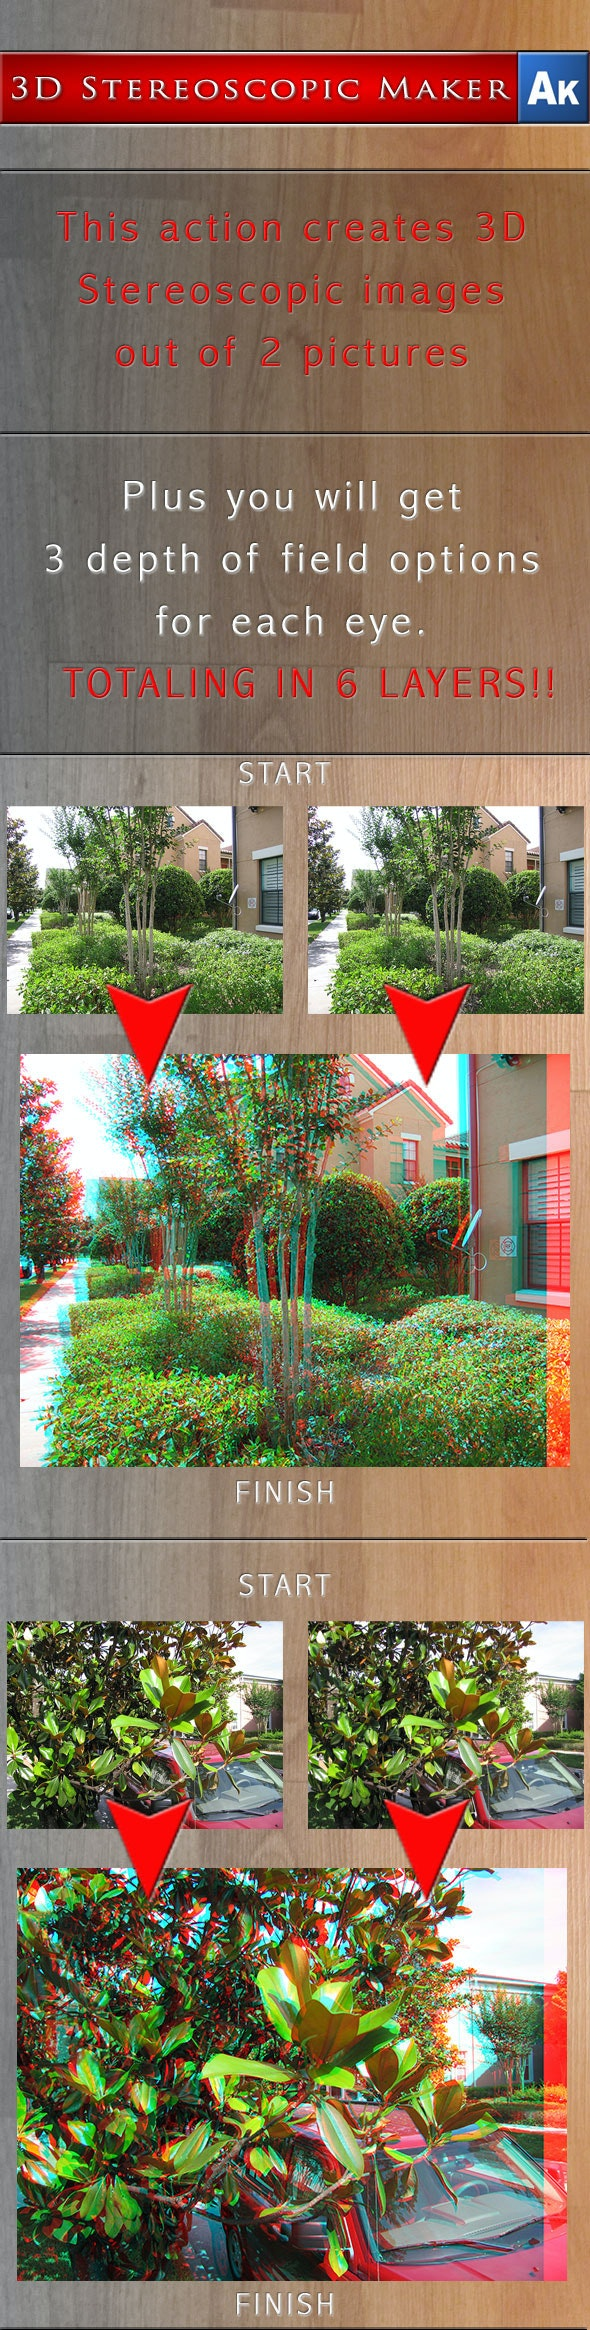 3D Stereoscopic Maker - Adobe Photoshop Action - Photoshop Add-ons